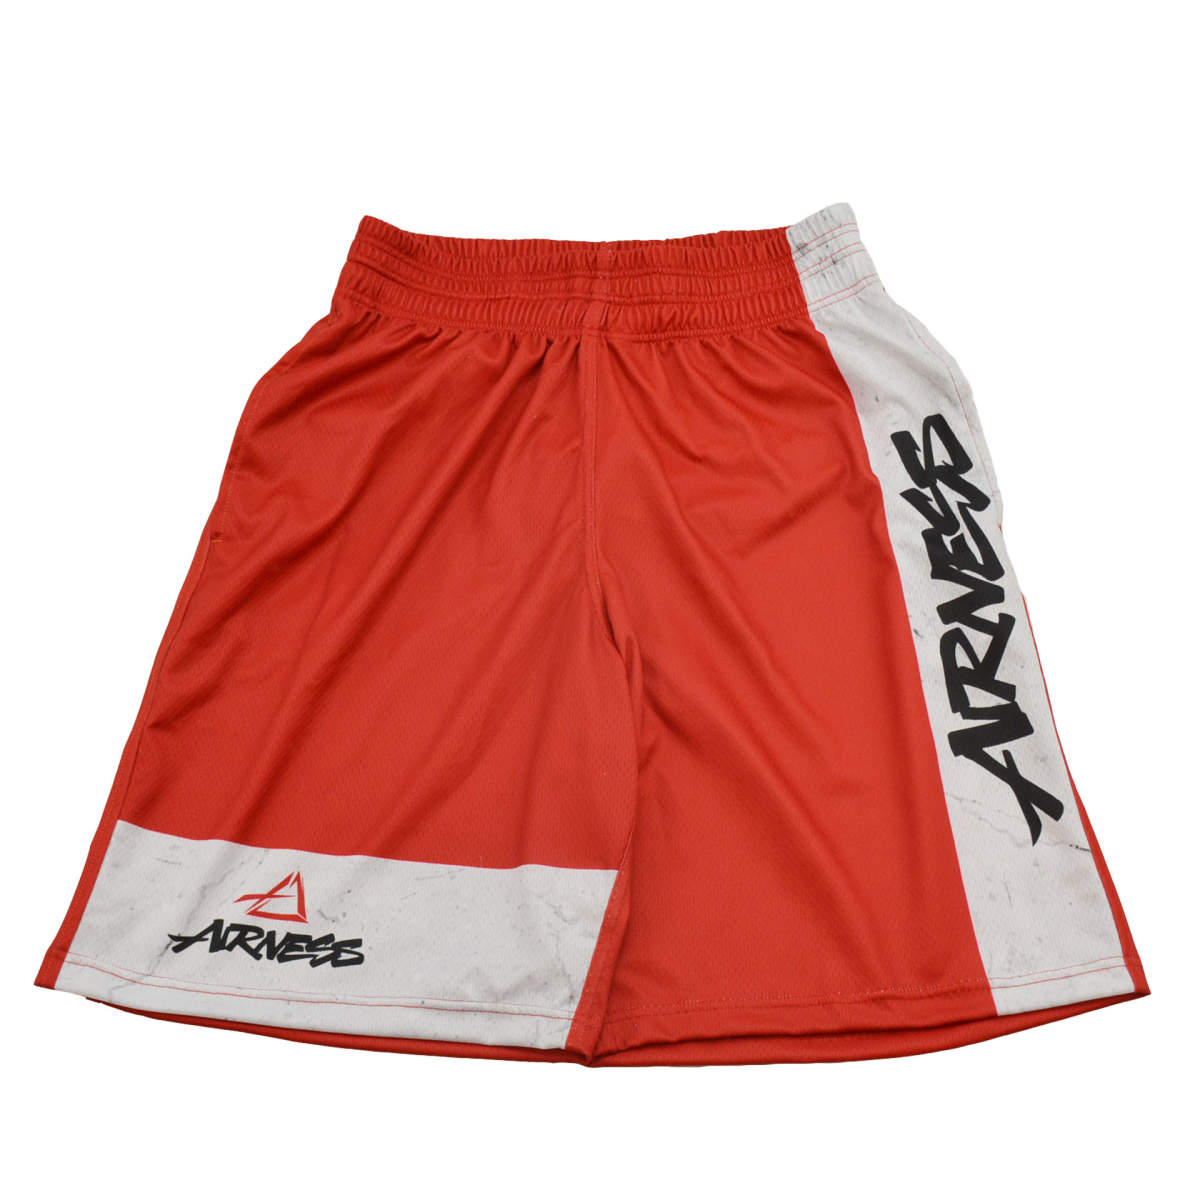 Airness color block short red